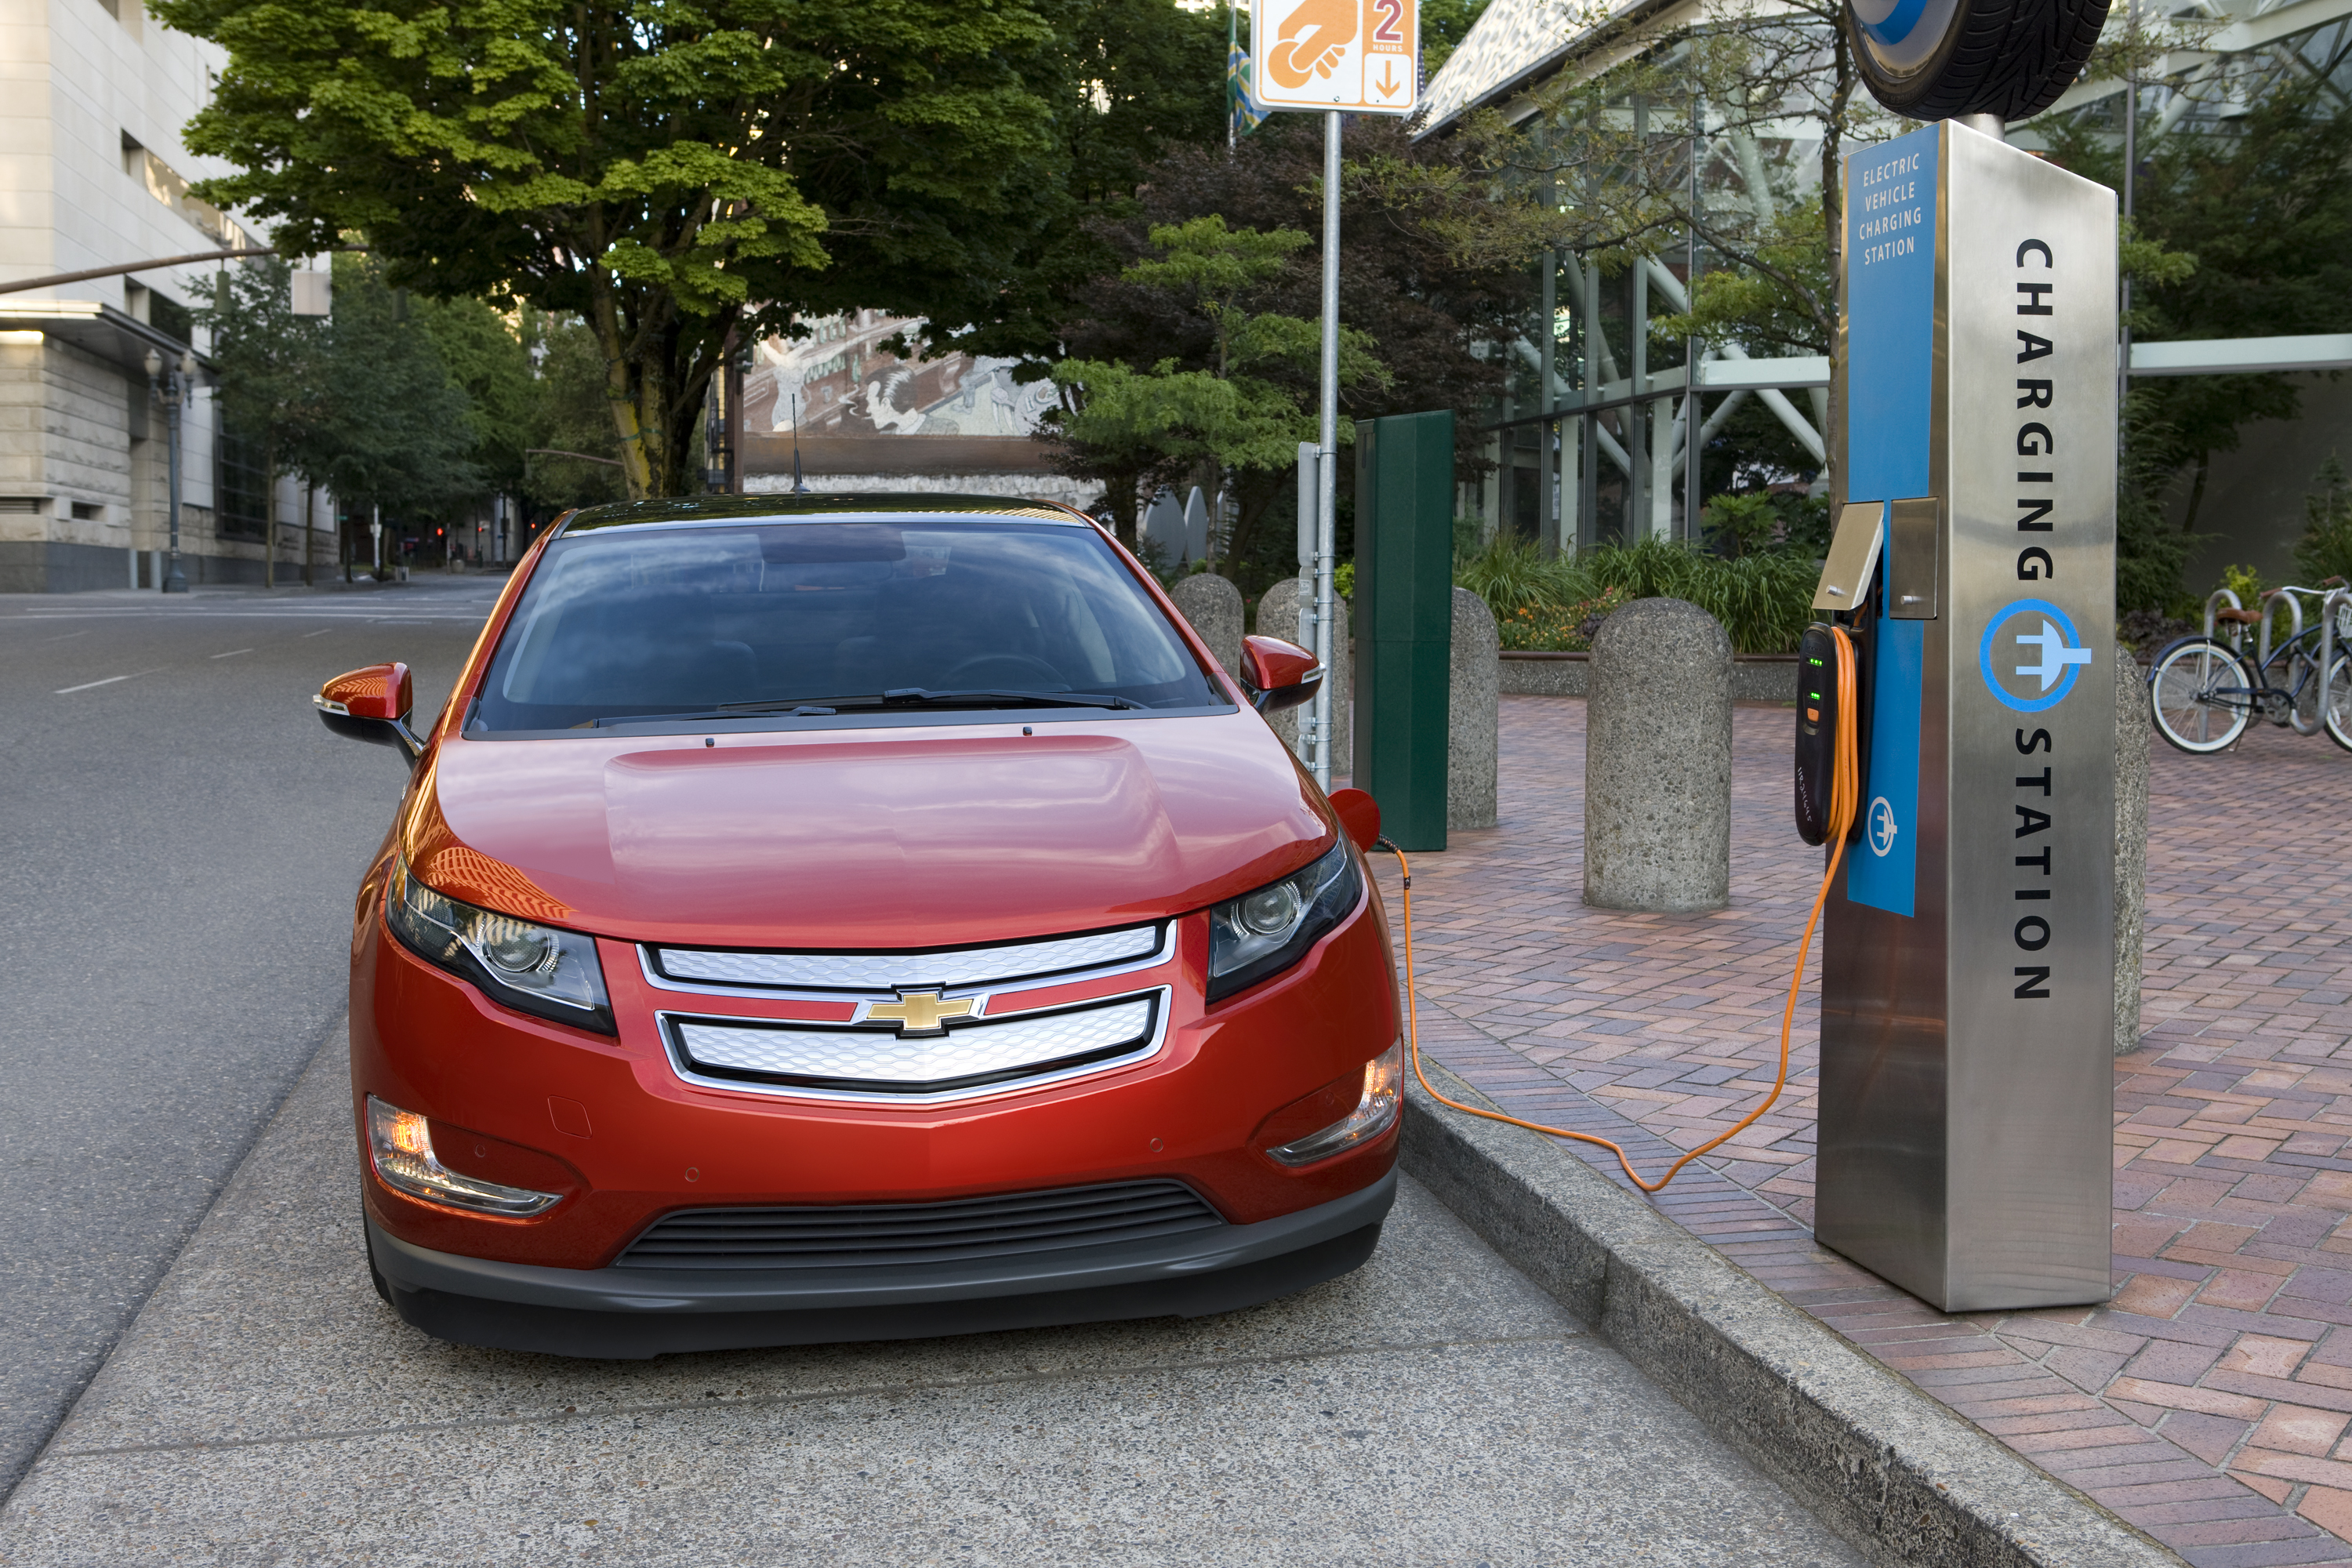 Updated New Volt Pictures Specifications News Road Reality Chevy Gas Show Press Release 2011 Chevrolet